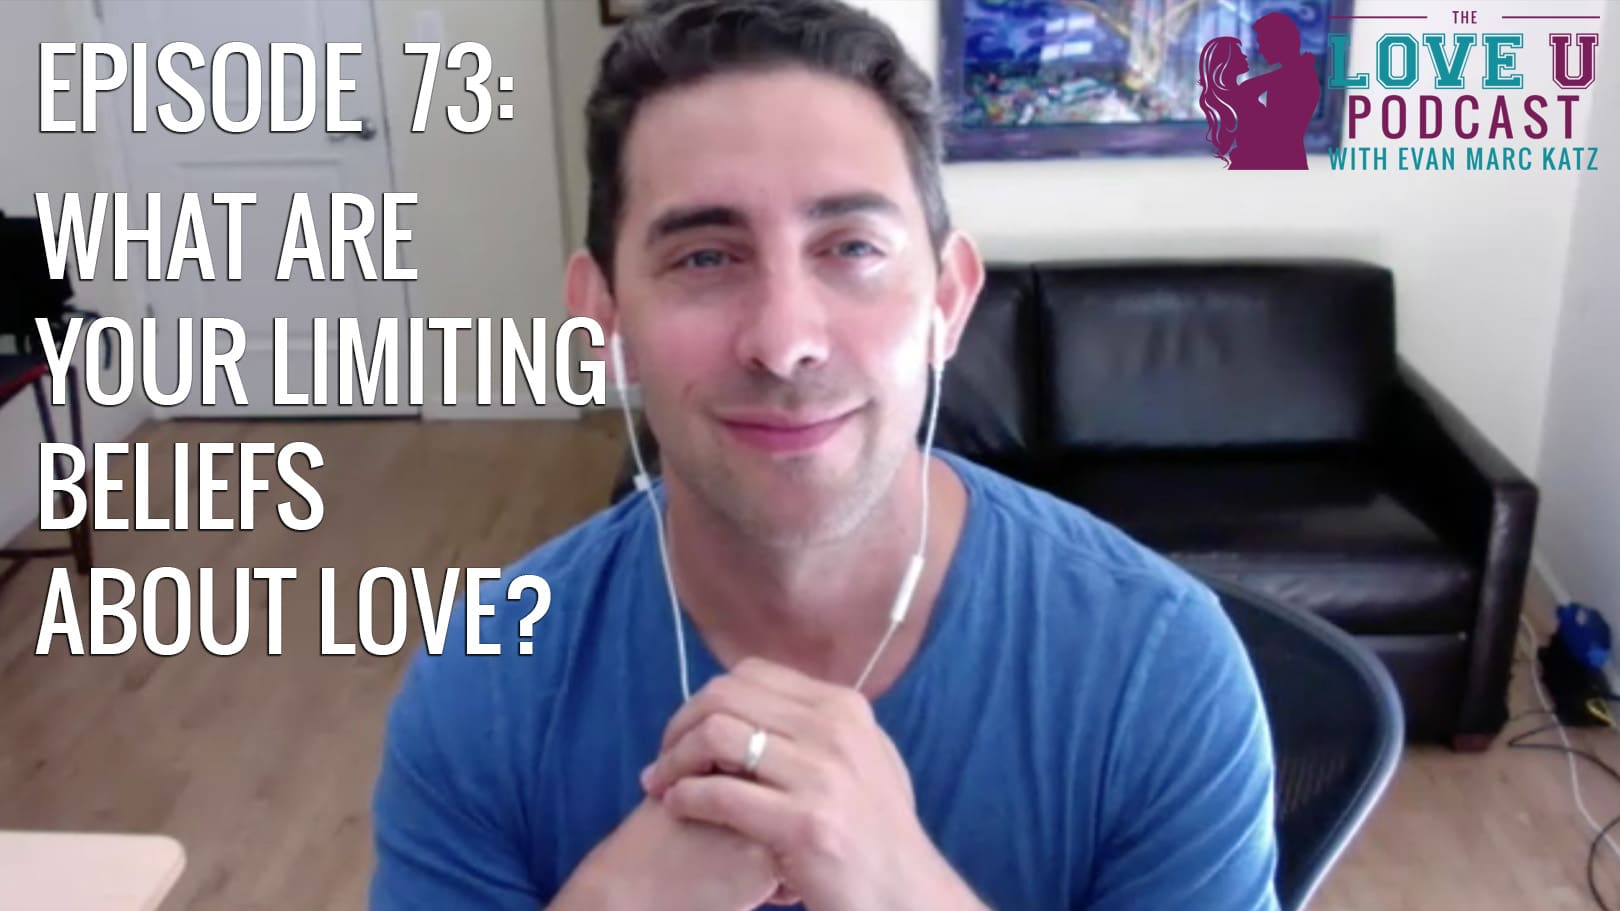 Our interview with Evan Marc Katz the dating coach